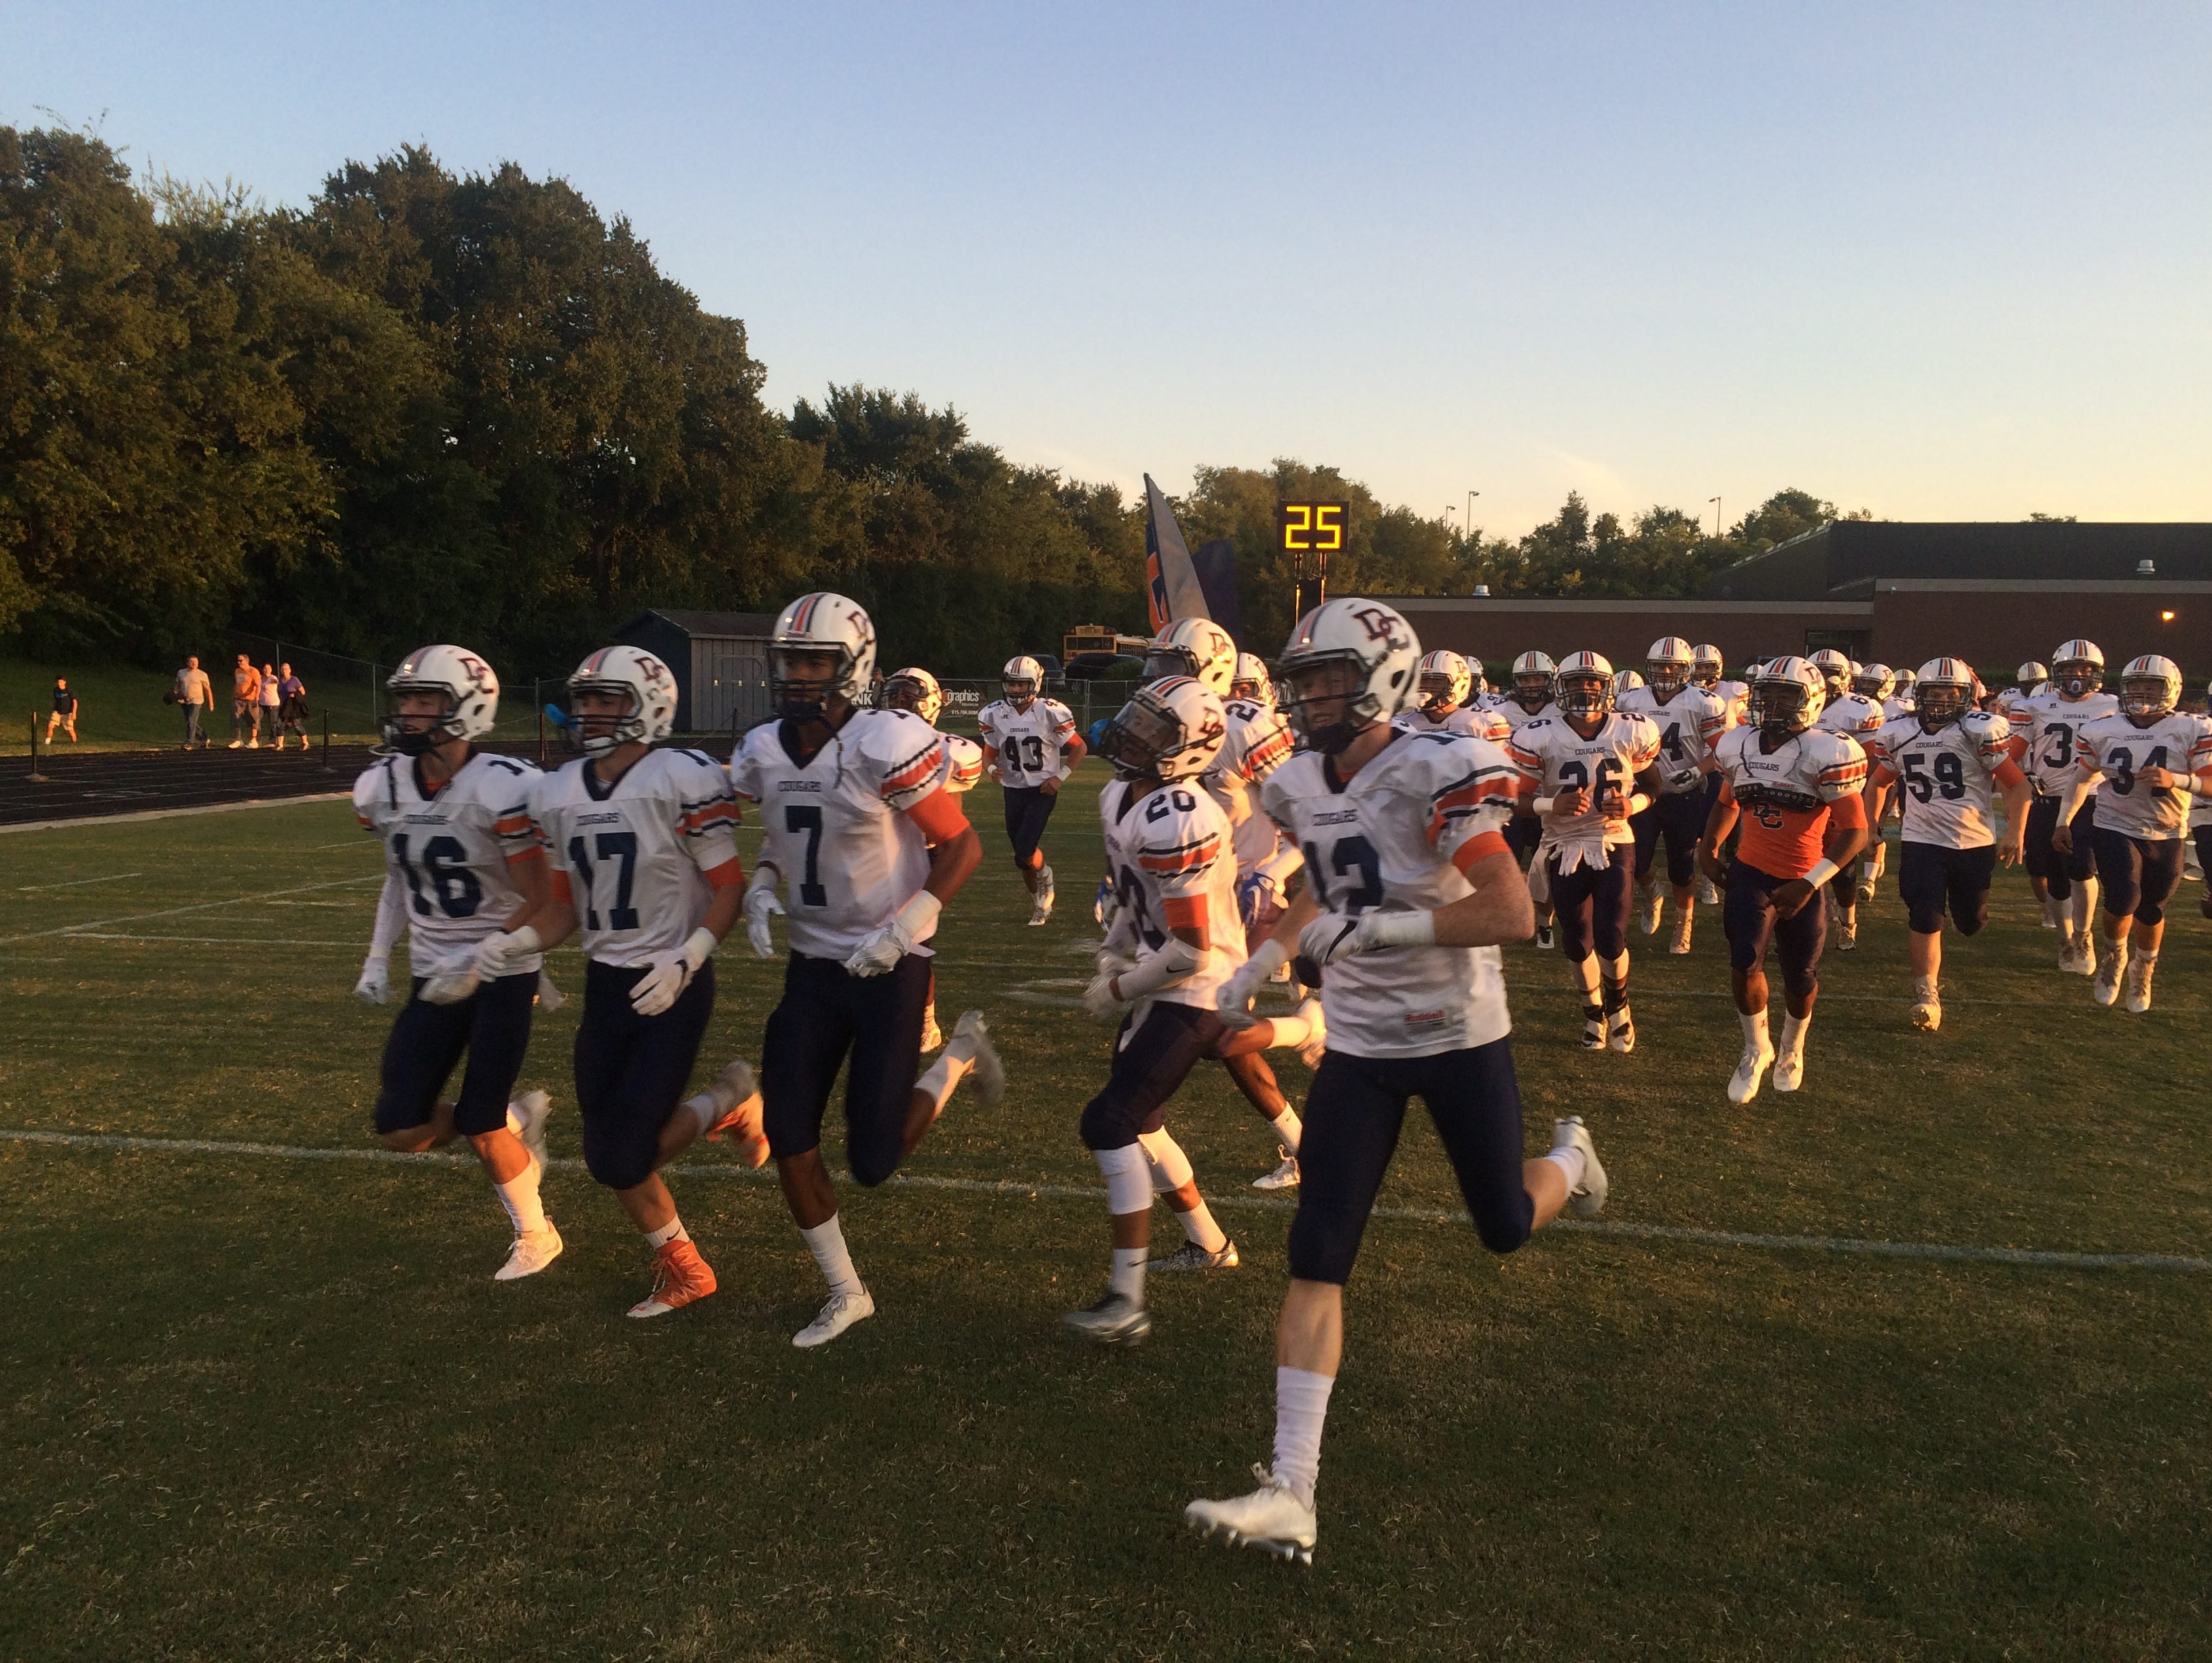 The Cougars race towards the sidelines before their game against Centennial.